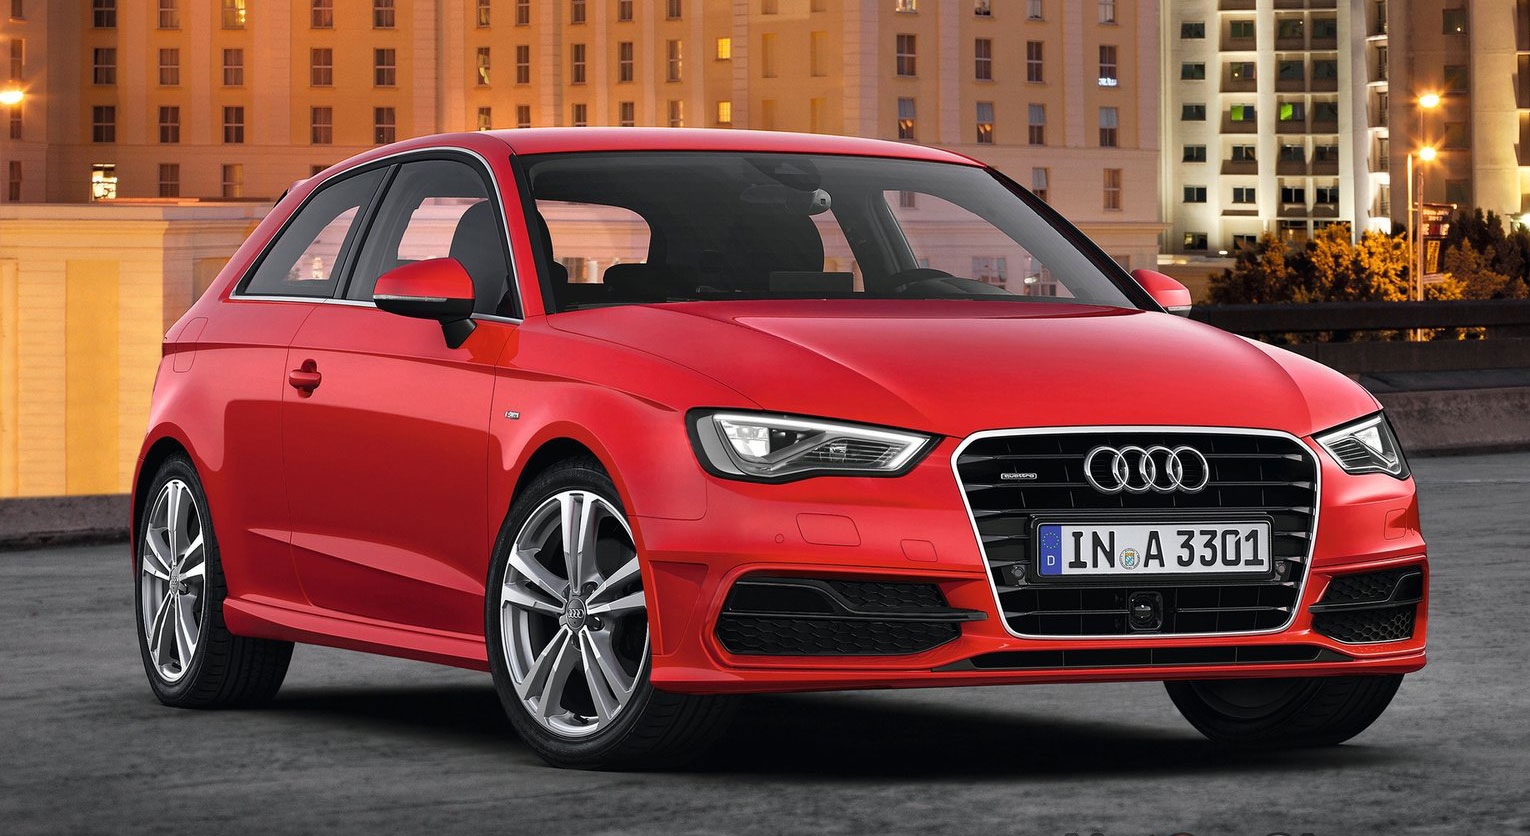 new audi a3 third gen compact makes geneva debut. Black Bedroom Furniture Sets. Home Design Ideas